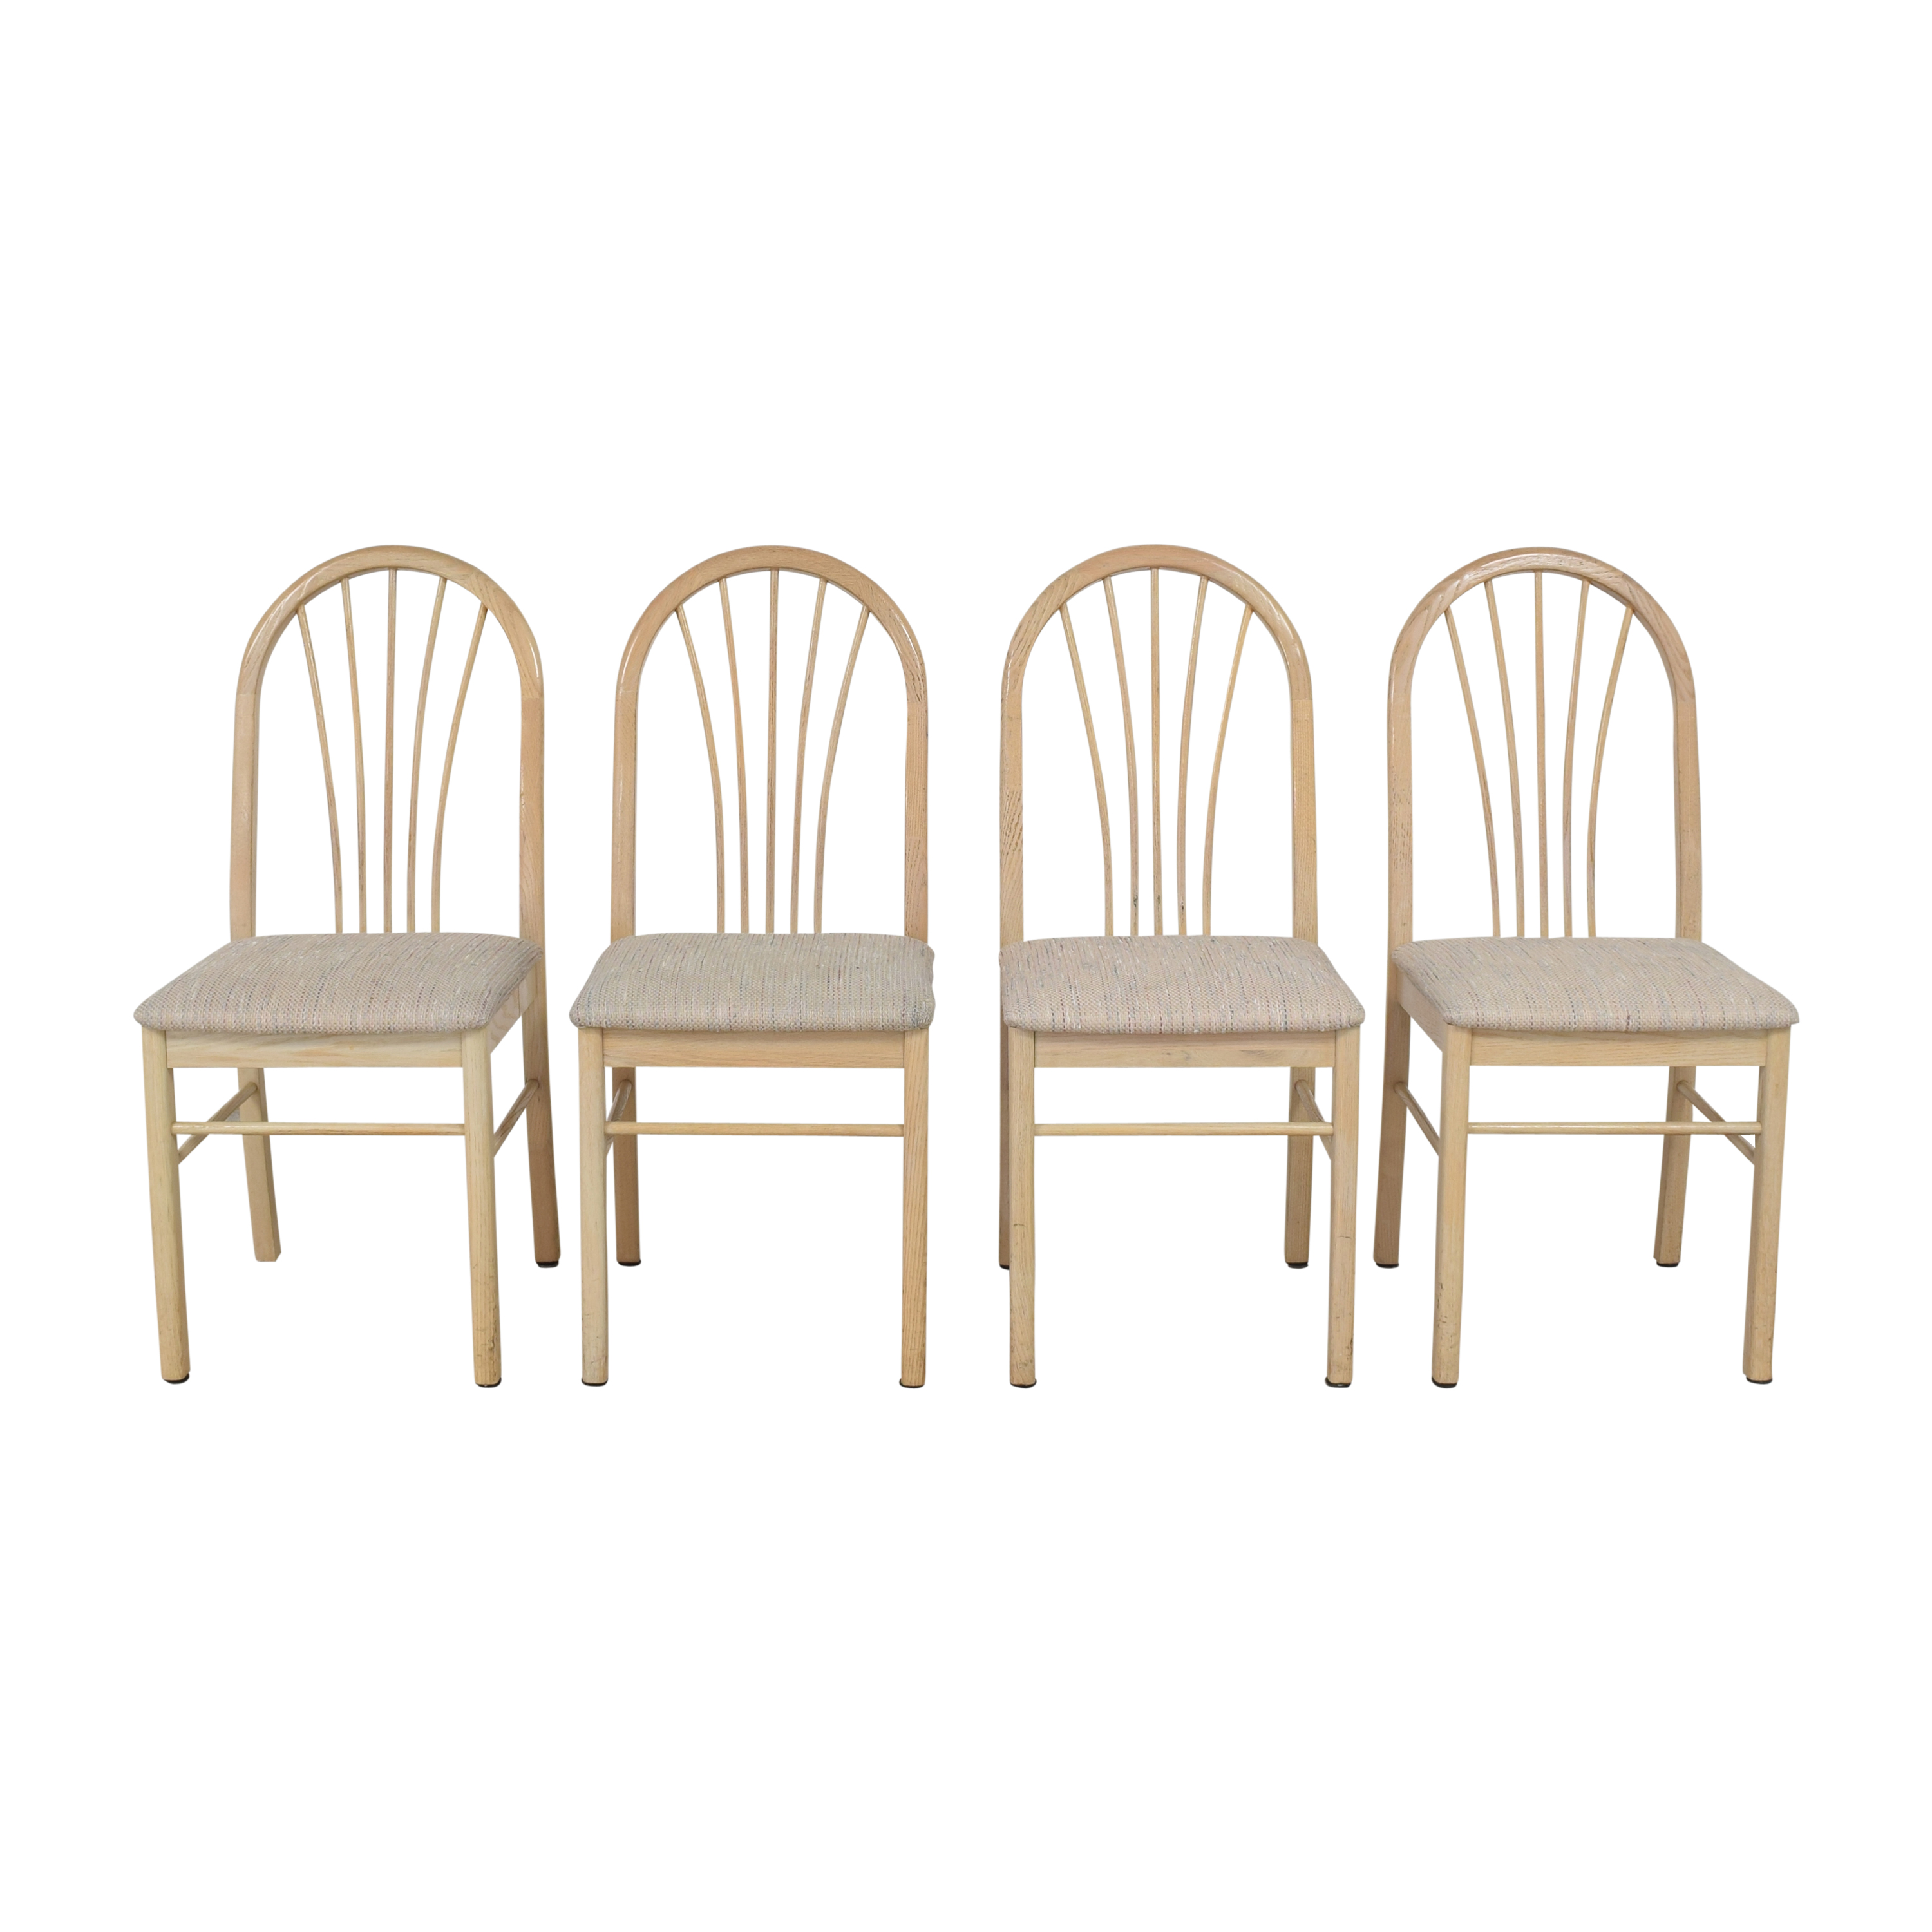 Dinaire Dinaire Upholstered Seat Dining Chairs on sale